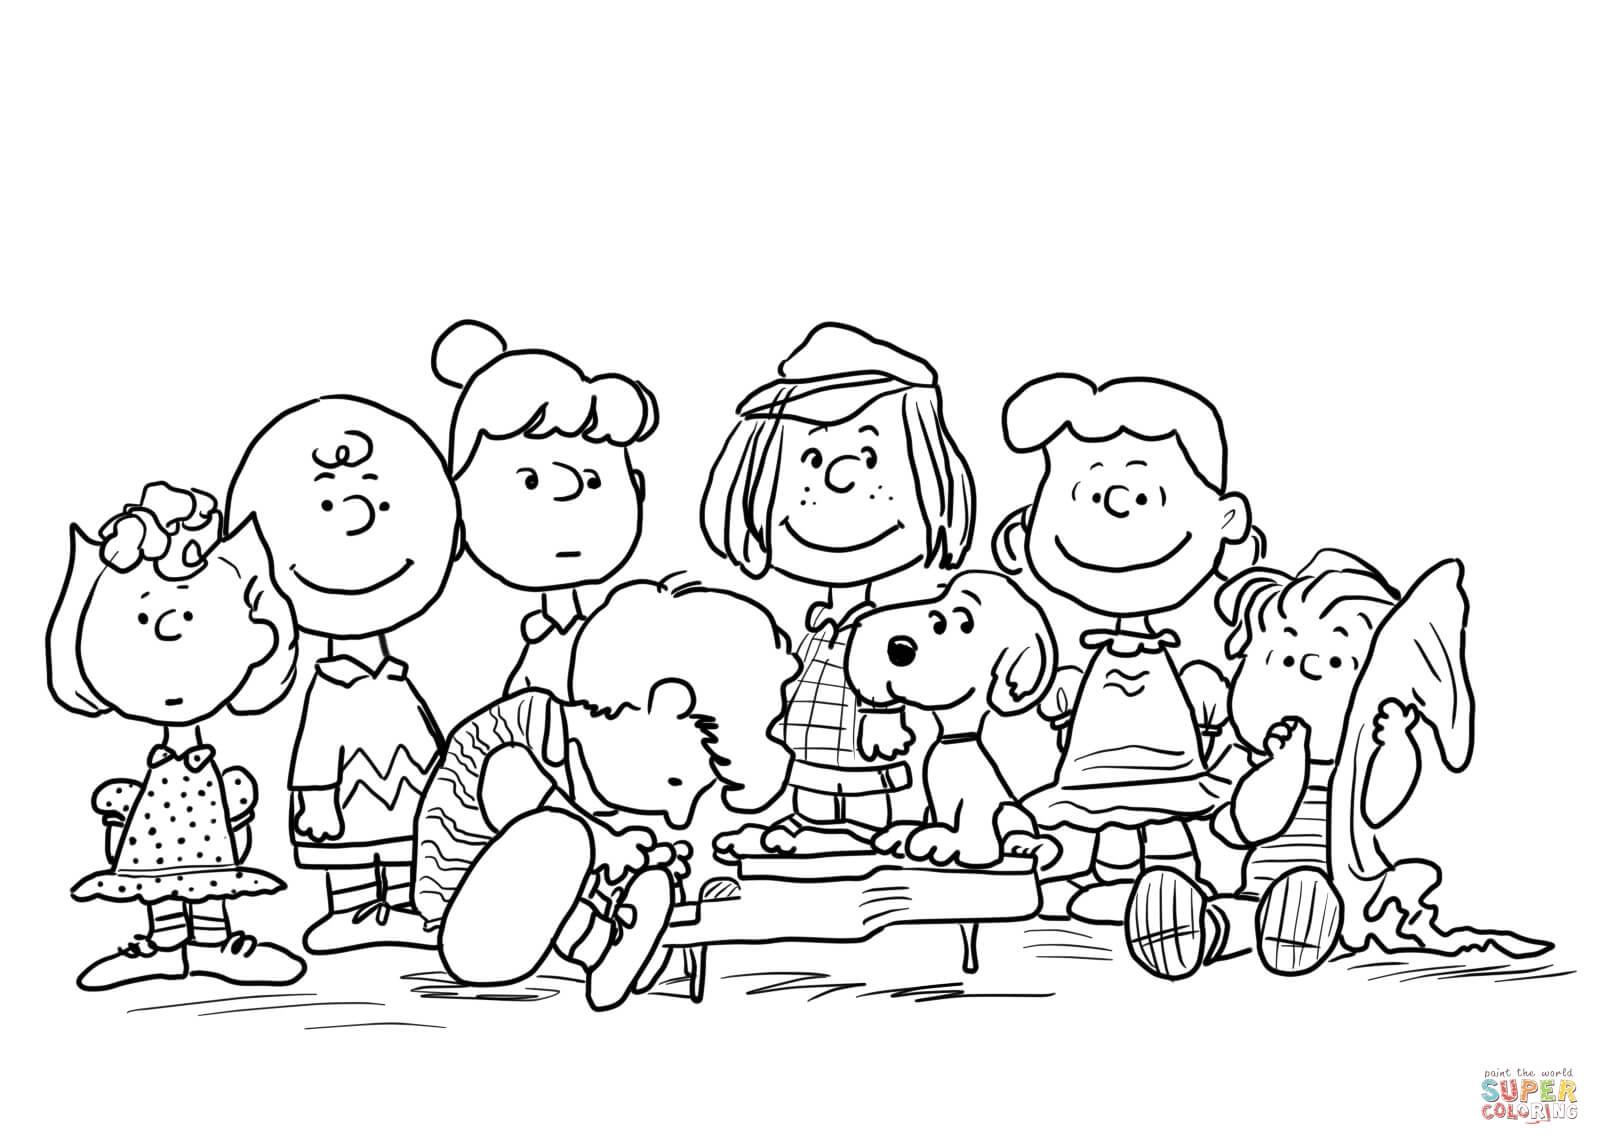 peanuts character coloring pages - photo#3